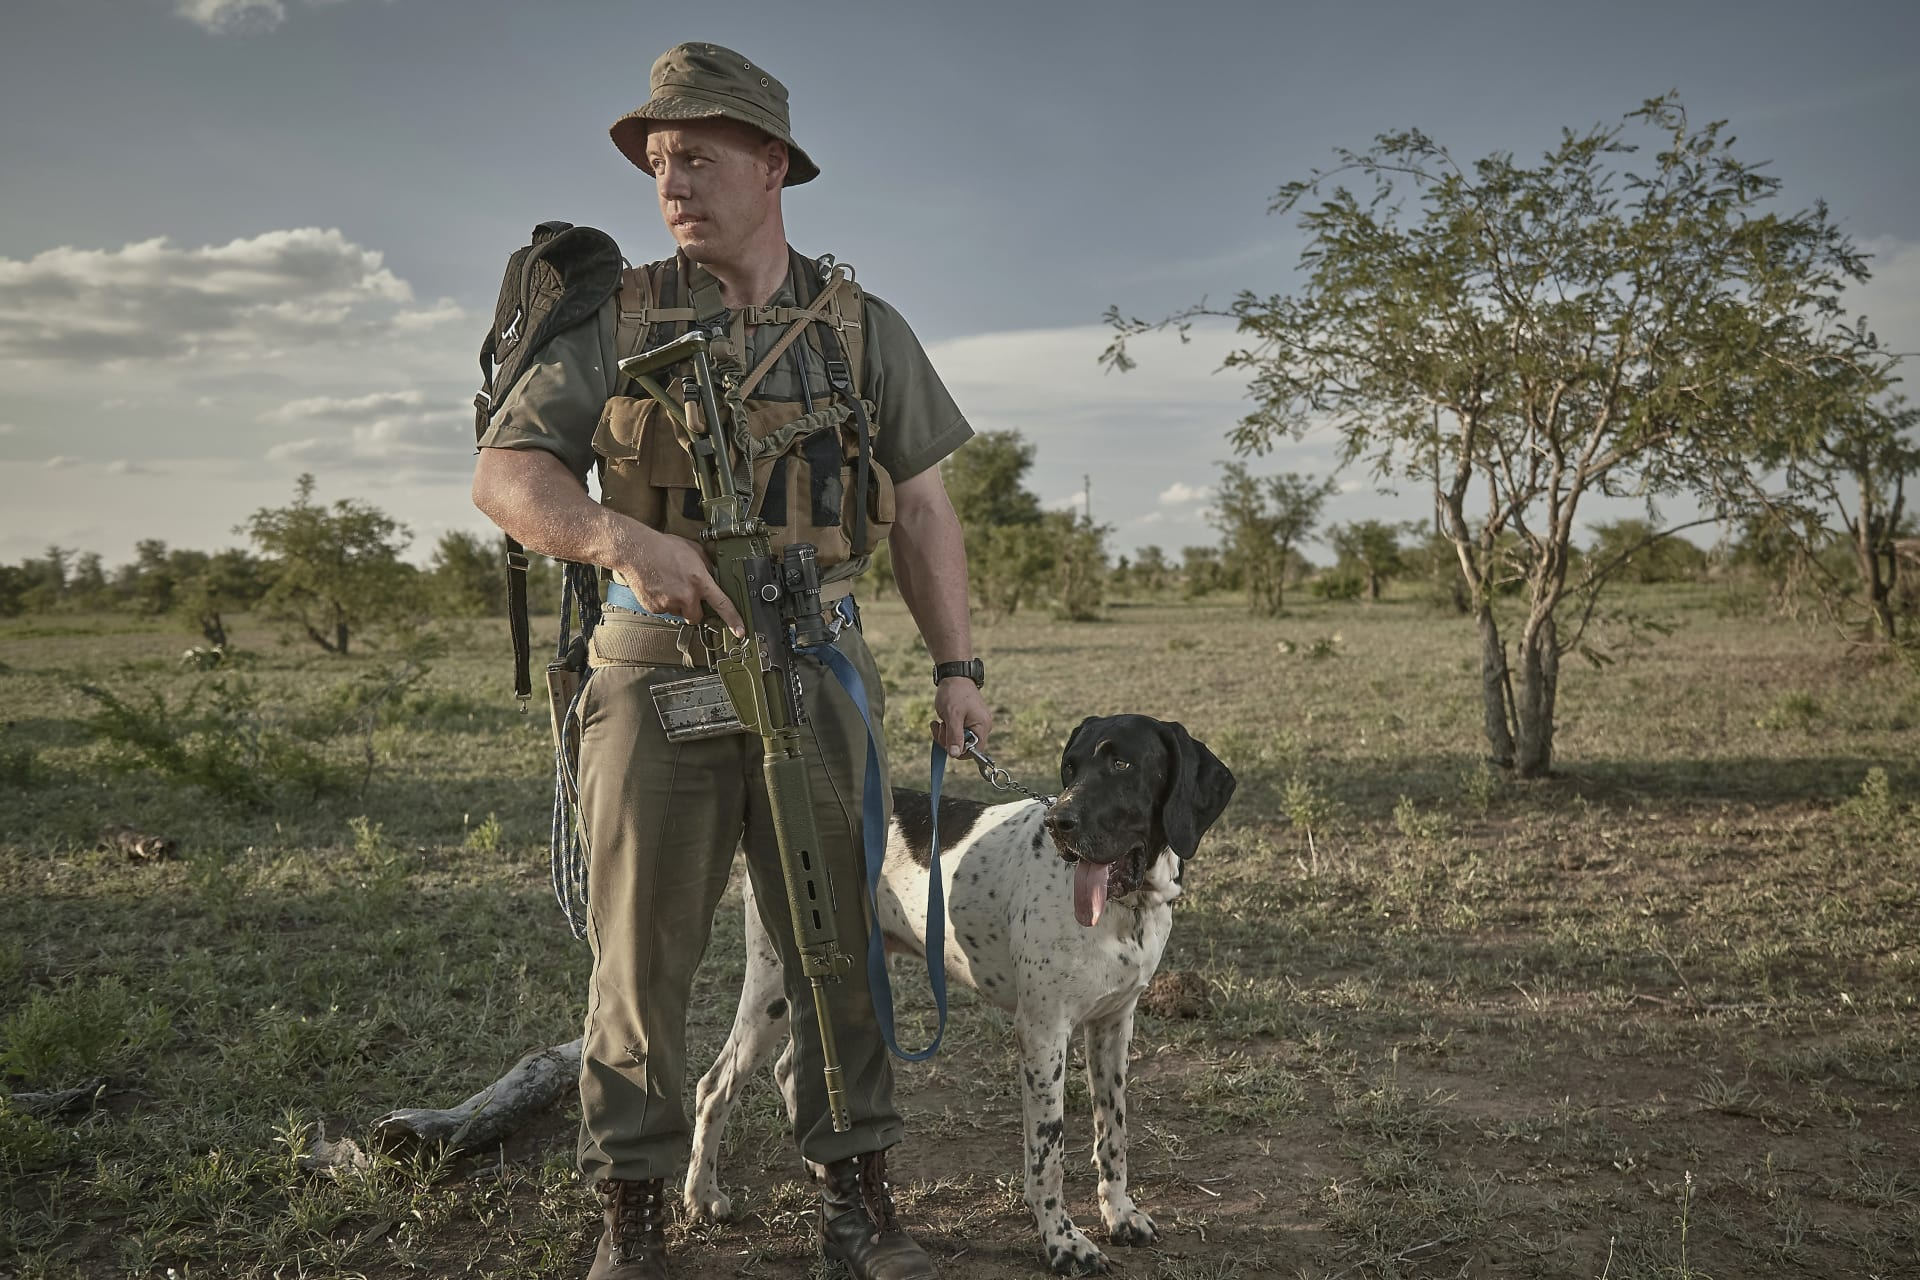 Ranger with tracking dog - tracking and apprehending a poacher before he has committed an offence will save a rhino, while tracking and capturing him after the bloody act can lead to valuable intelligence and ultimately criminal prosecution.